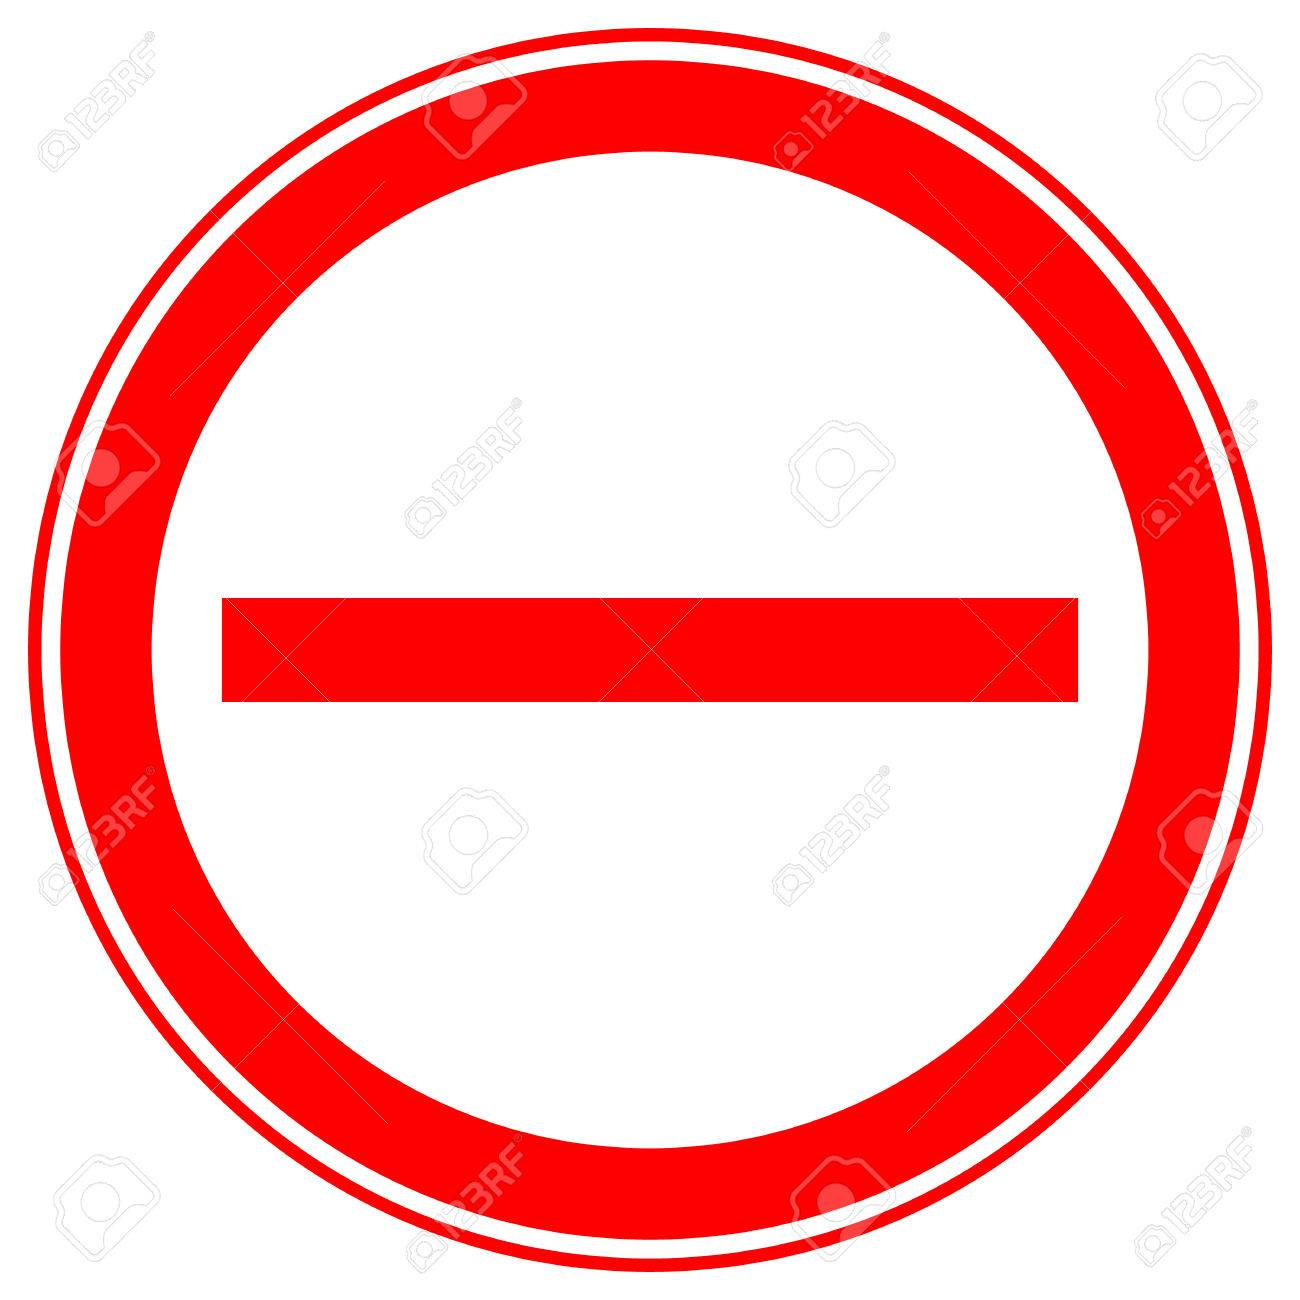 picture relating to Free Printable Road Signs titled Printable restriction, prohibition signs or symptoms, prohibitive street indications